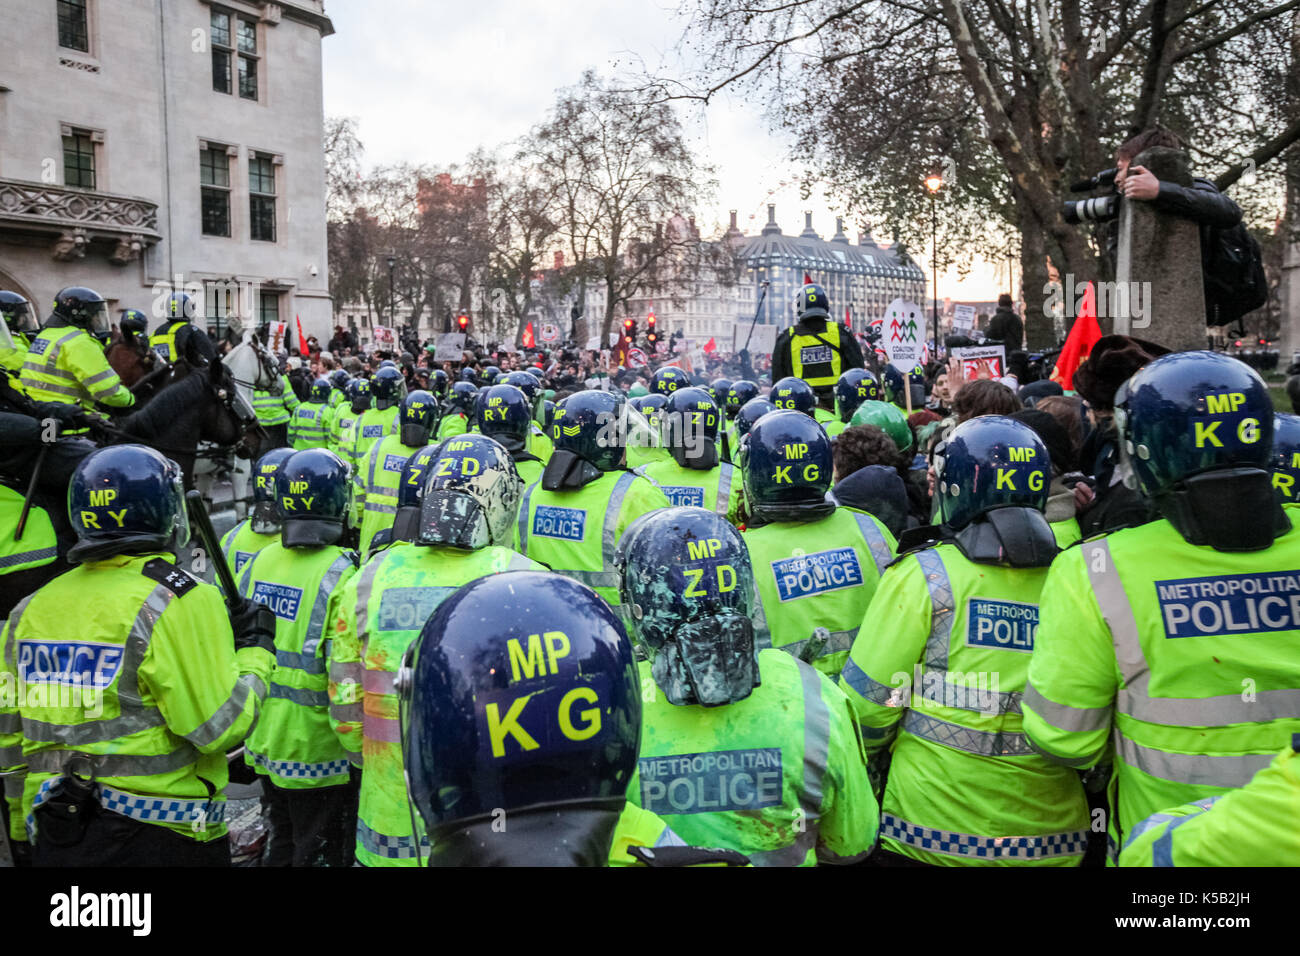 Mass student protests and civil unrest in London against increases in university tuition fees. - Stock Image